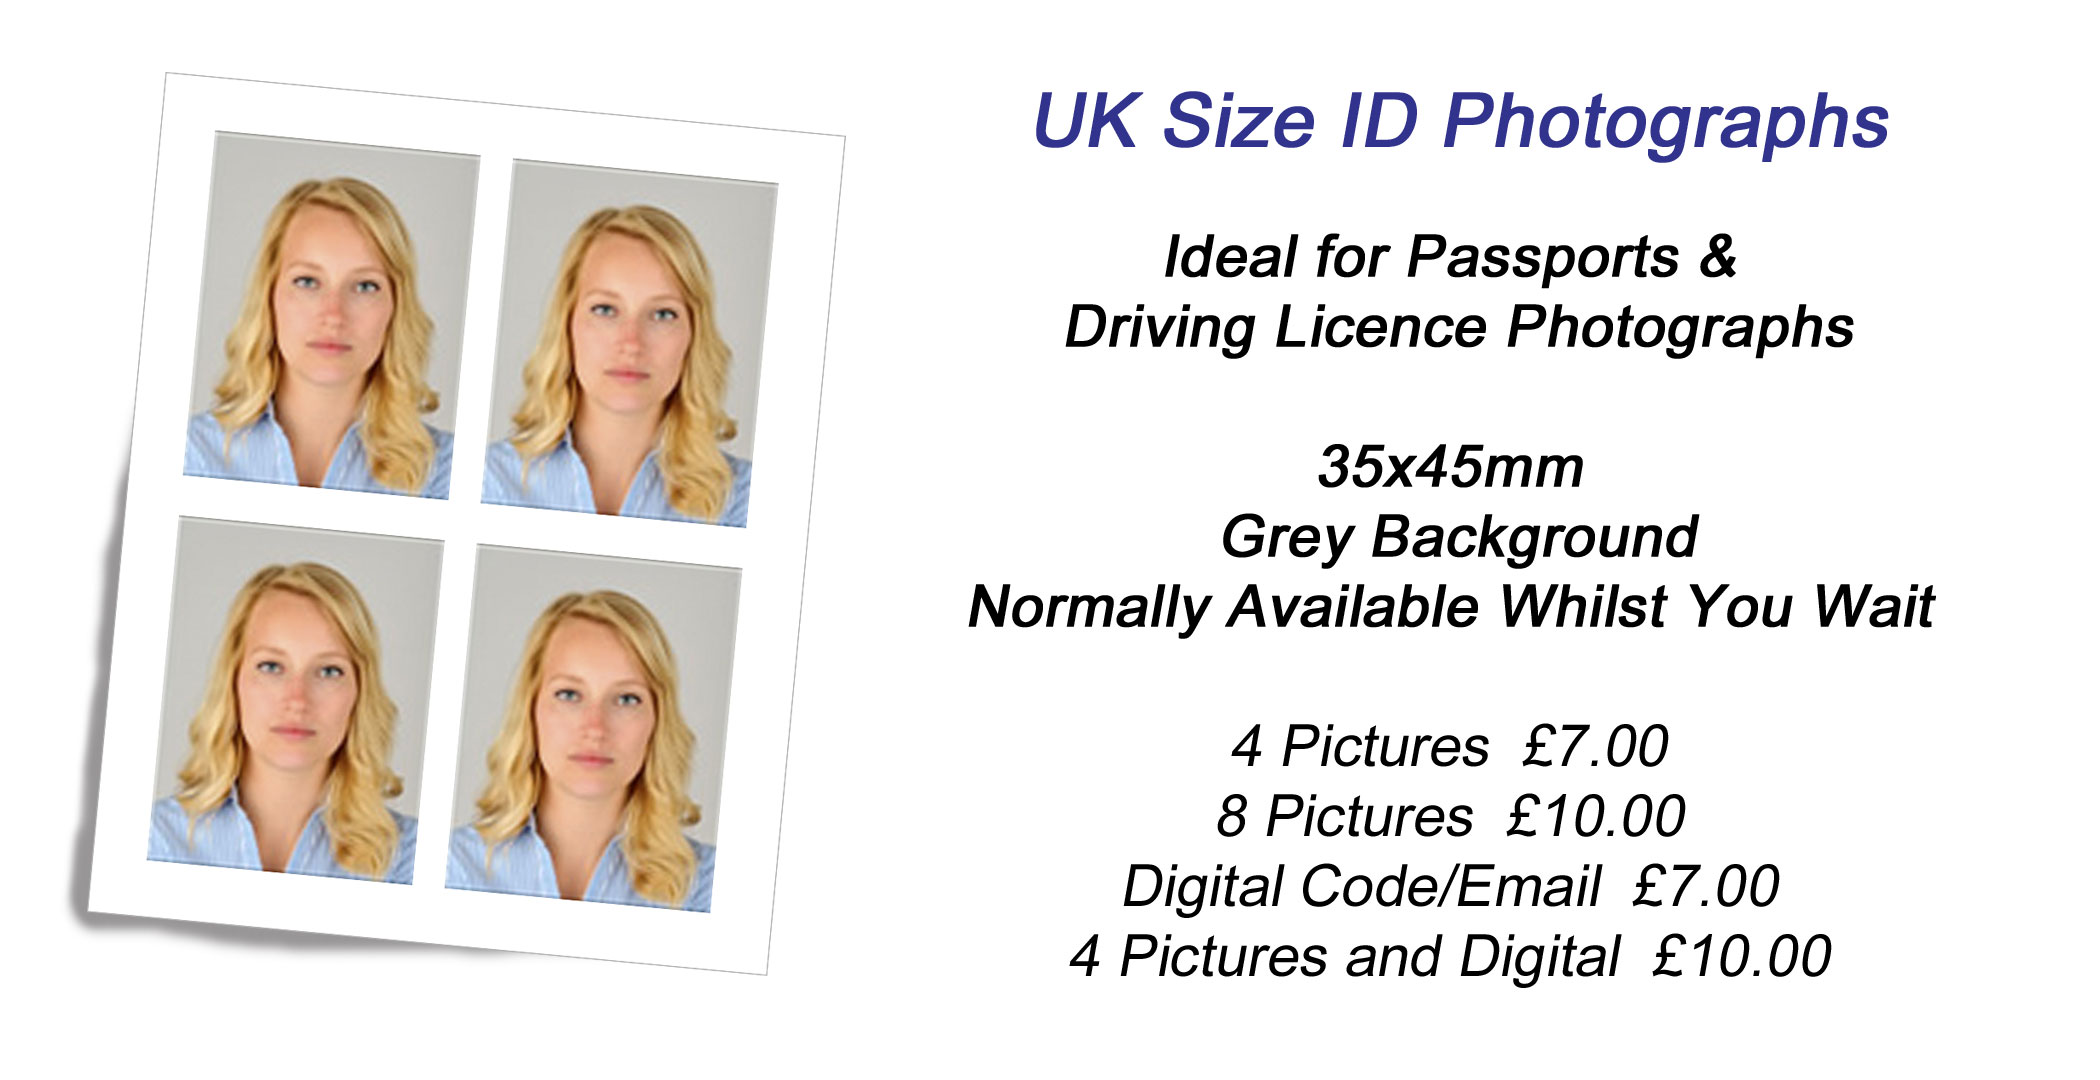 UK Size ID Photographs. Ideal for Passport and Driving Licence. 35x45mm, Grey Background.